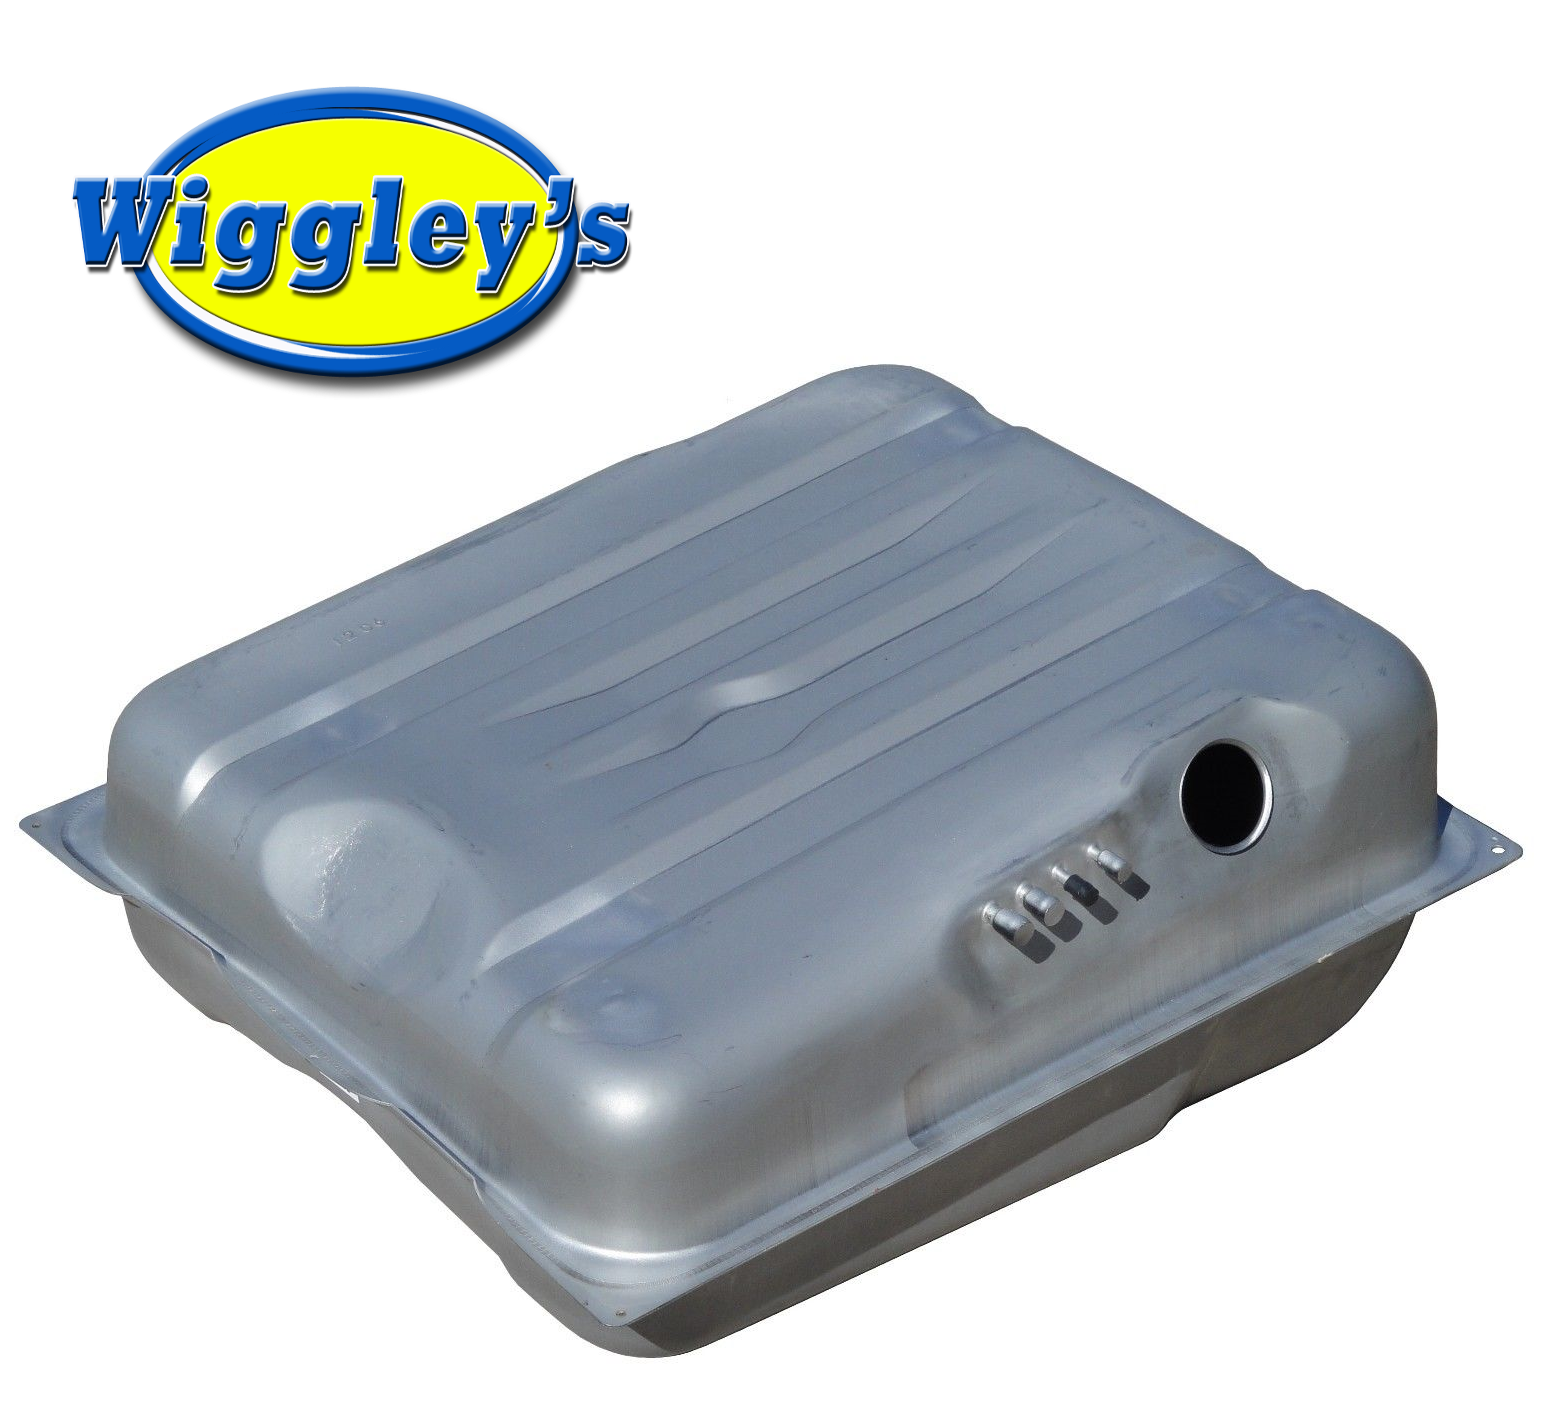 STAINLESS STEEL FUEL TANK ICR8F-SS FOR 71 72 DODGE CHALLENGER